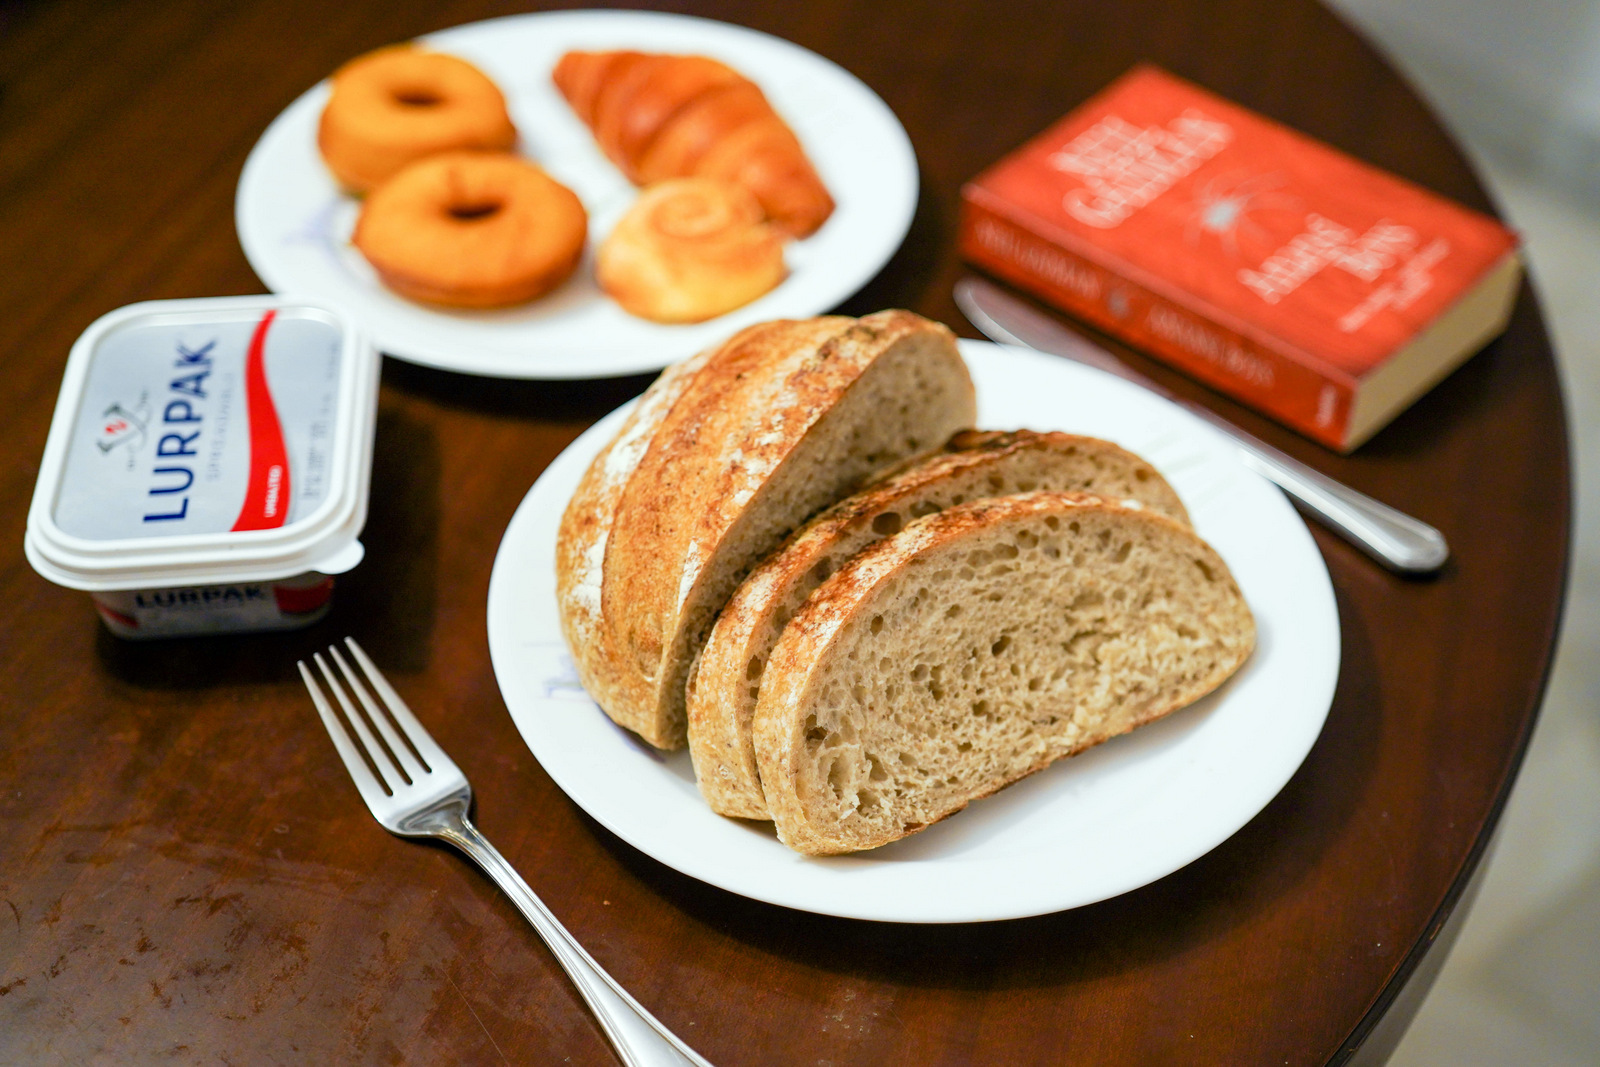 bengbeng sourdough: online sourdough bakery for bread, bagels, croissants, donuts and more